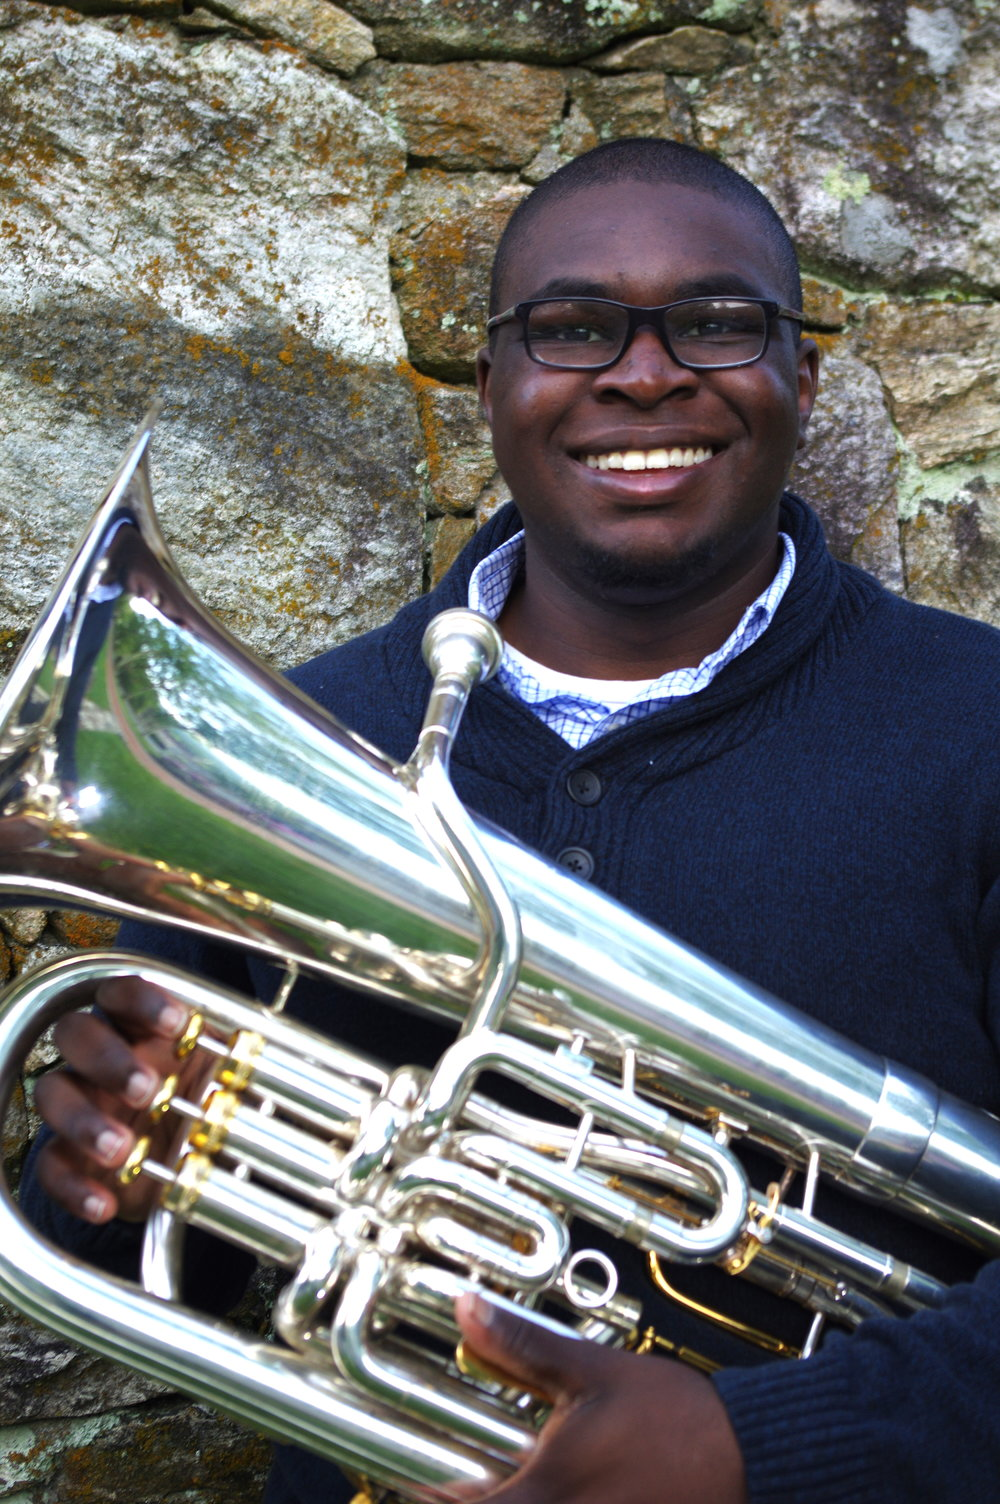 michael johnson - Michael Johnson is a teacher, performer, and adjudicator in the low brass world. He began playing euphonium at 17 and has expanded into trombone and tuba as well. He studied euphonium with Mr. John Sizemore while studying at North Greenville University. After his undergraduate degree was complete he attended Samford University for his Master of Music Education where he studied with Dr. Demondrae Thurman and Dr. Brandon Slocumb. Michael has published articles in brass pedagogy in the South Carolina Musician and enjoys finding new ways to teach concepts. He has taught students that have placed in All-State Jazz, Concert Band, and in the Alabama Youth Symphony. Michael continues to play in the area and enjoys performing on both trombone and euphonium. He loves teaching the fundamentals and believes a strong core basics sets the stage for more advanced success.